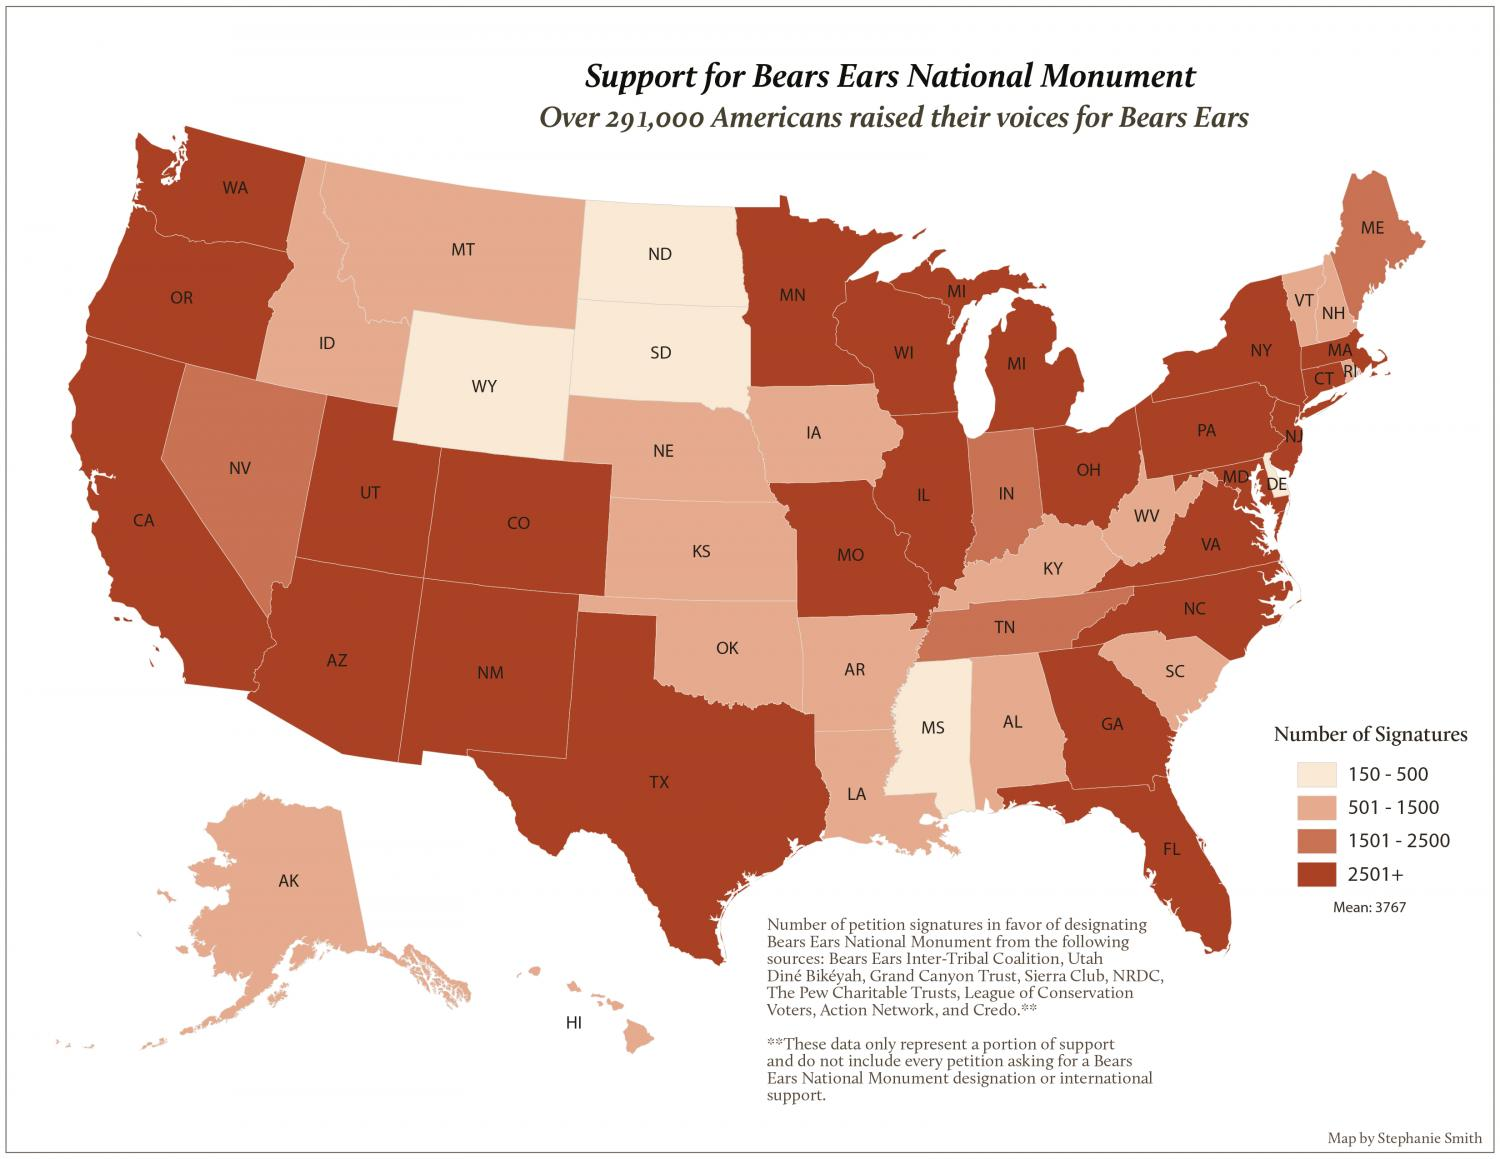 Map of U.S. support for Bears Ears National Monument